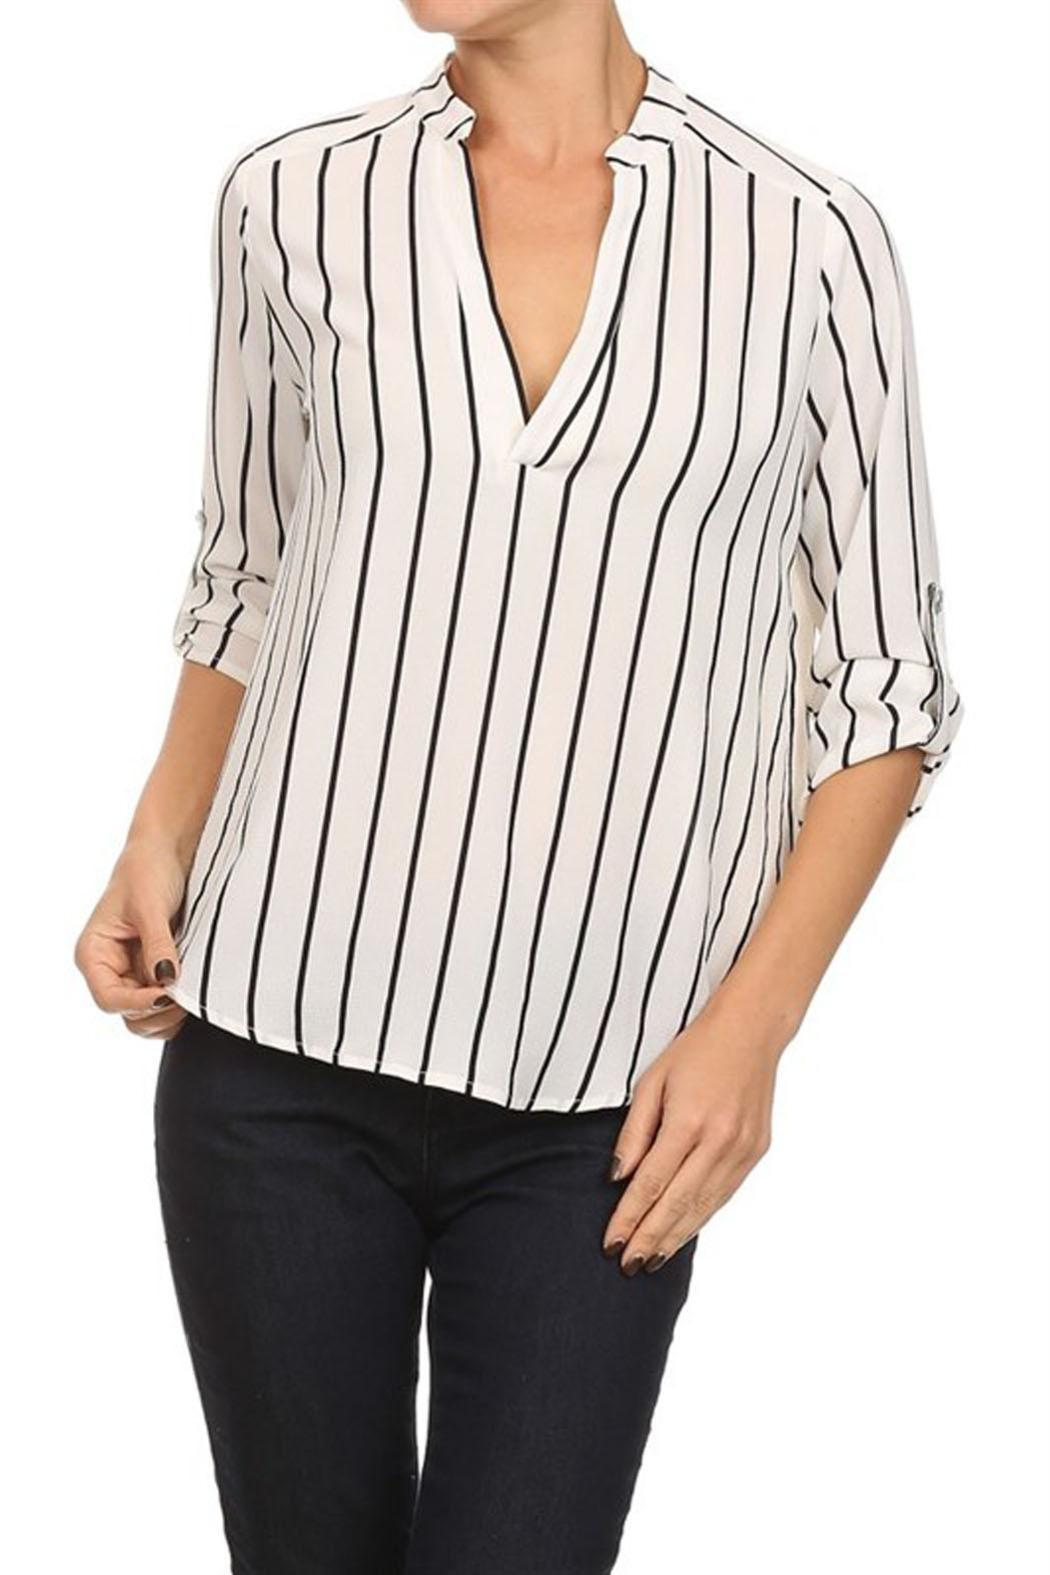 18df18431b4 Haute Monde Striped Blouse from Orange County by Maple Boutique ...